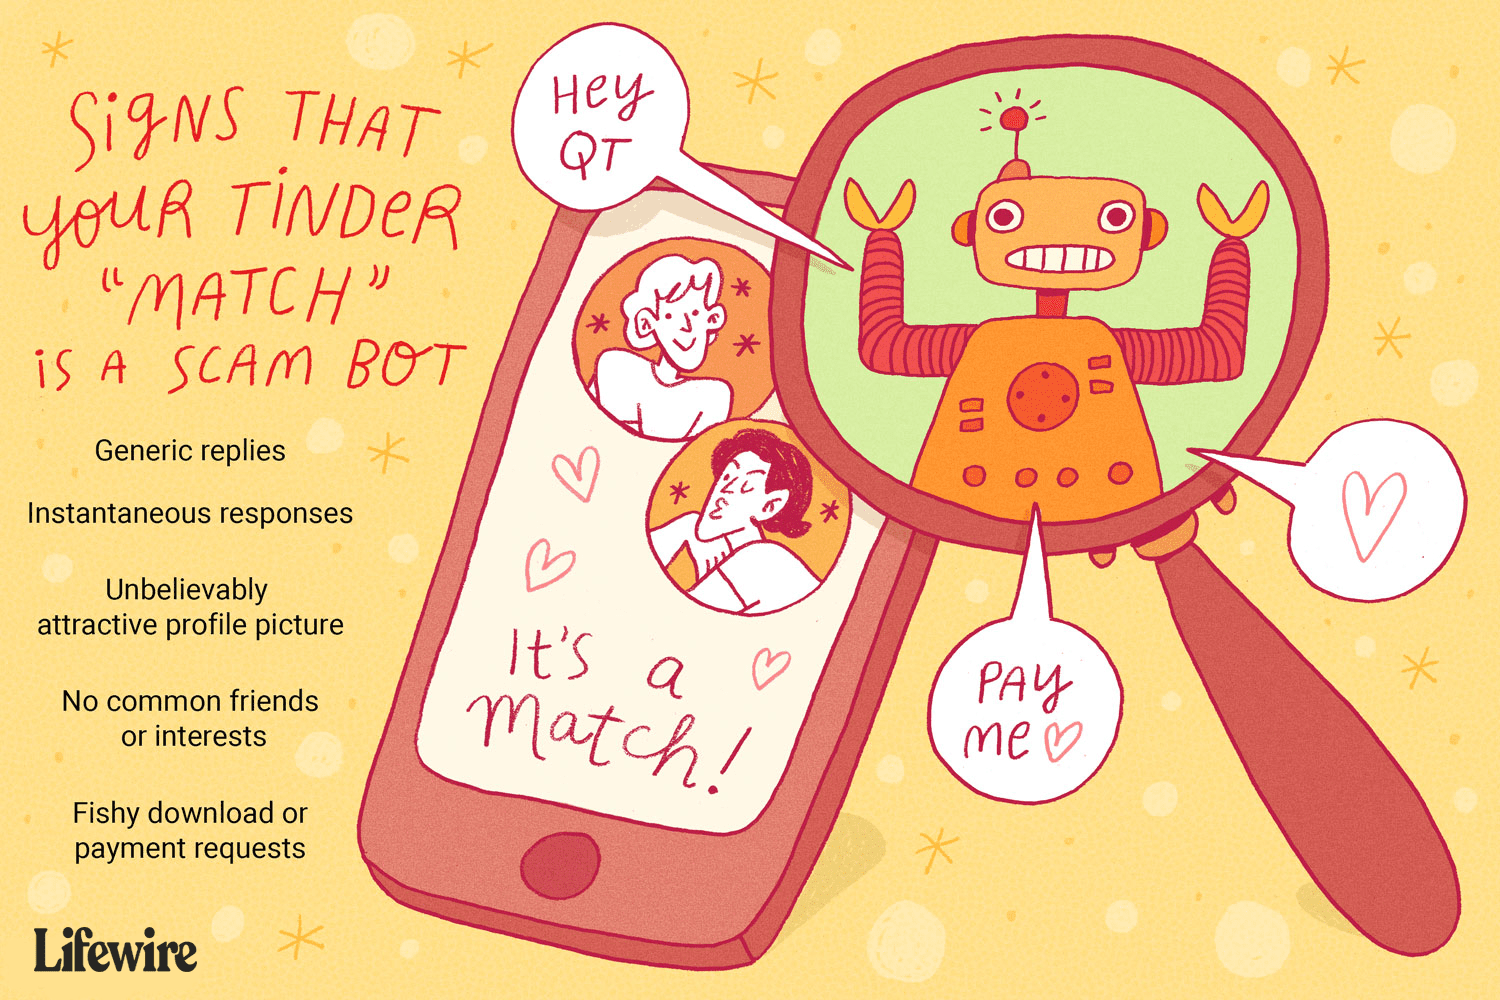 Examining a tinder match to see if it's a bot